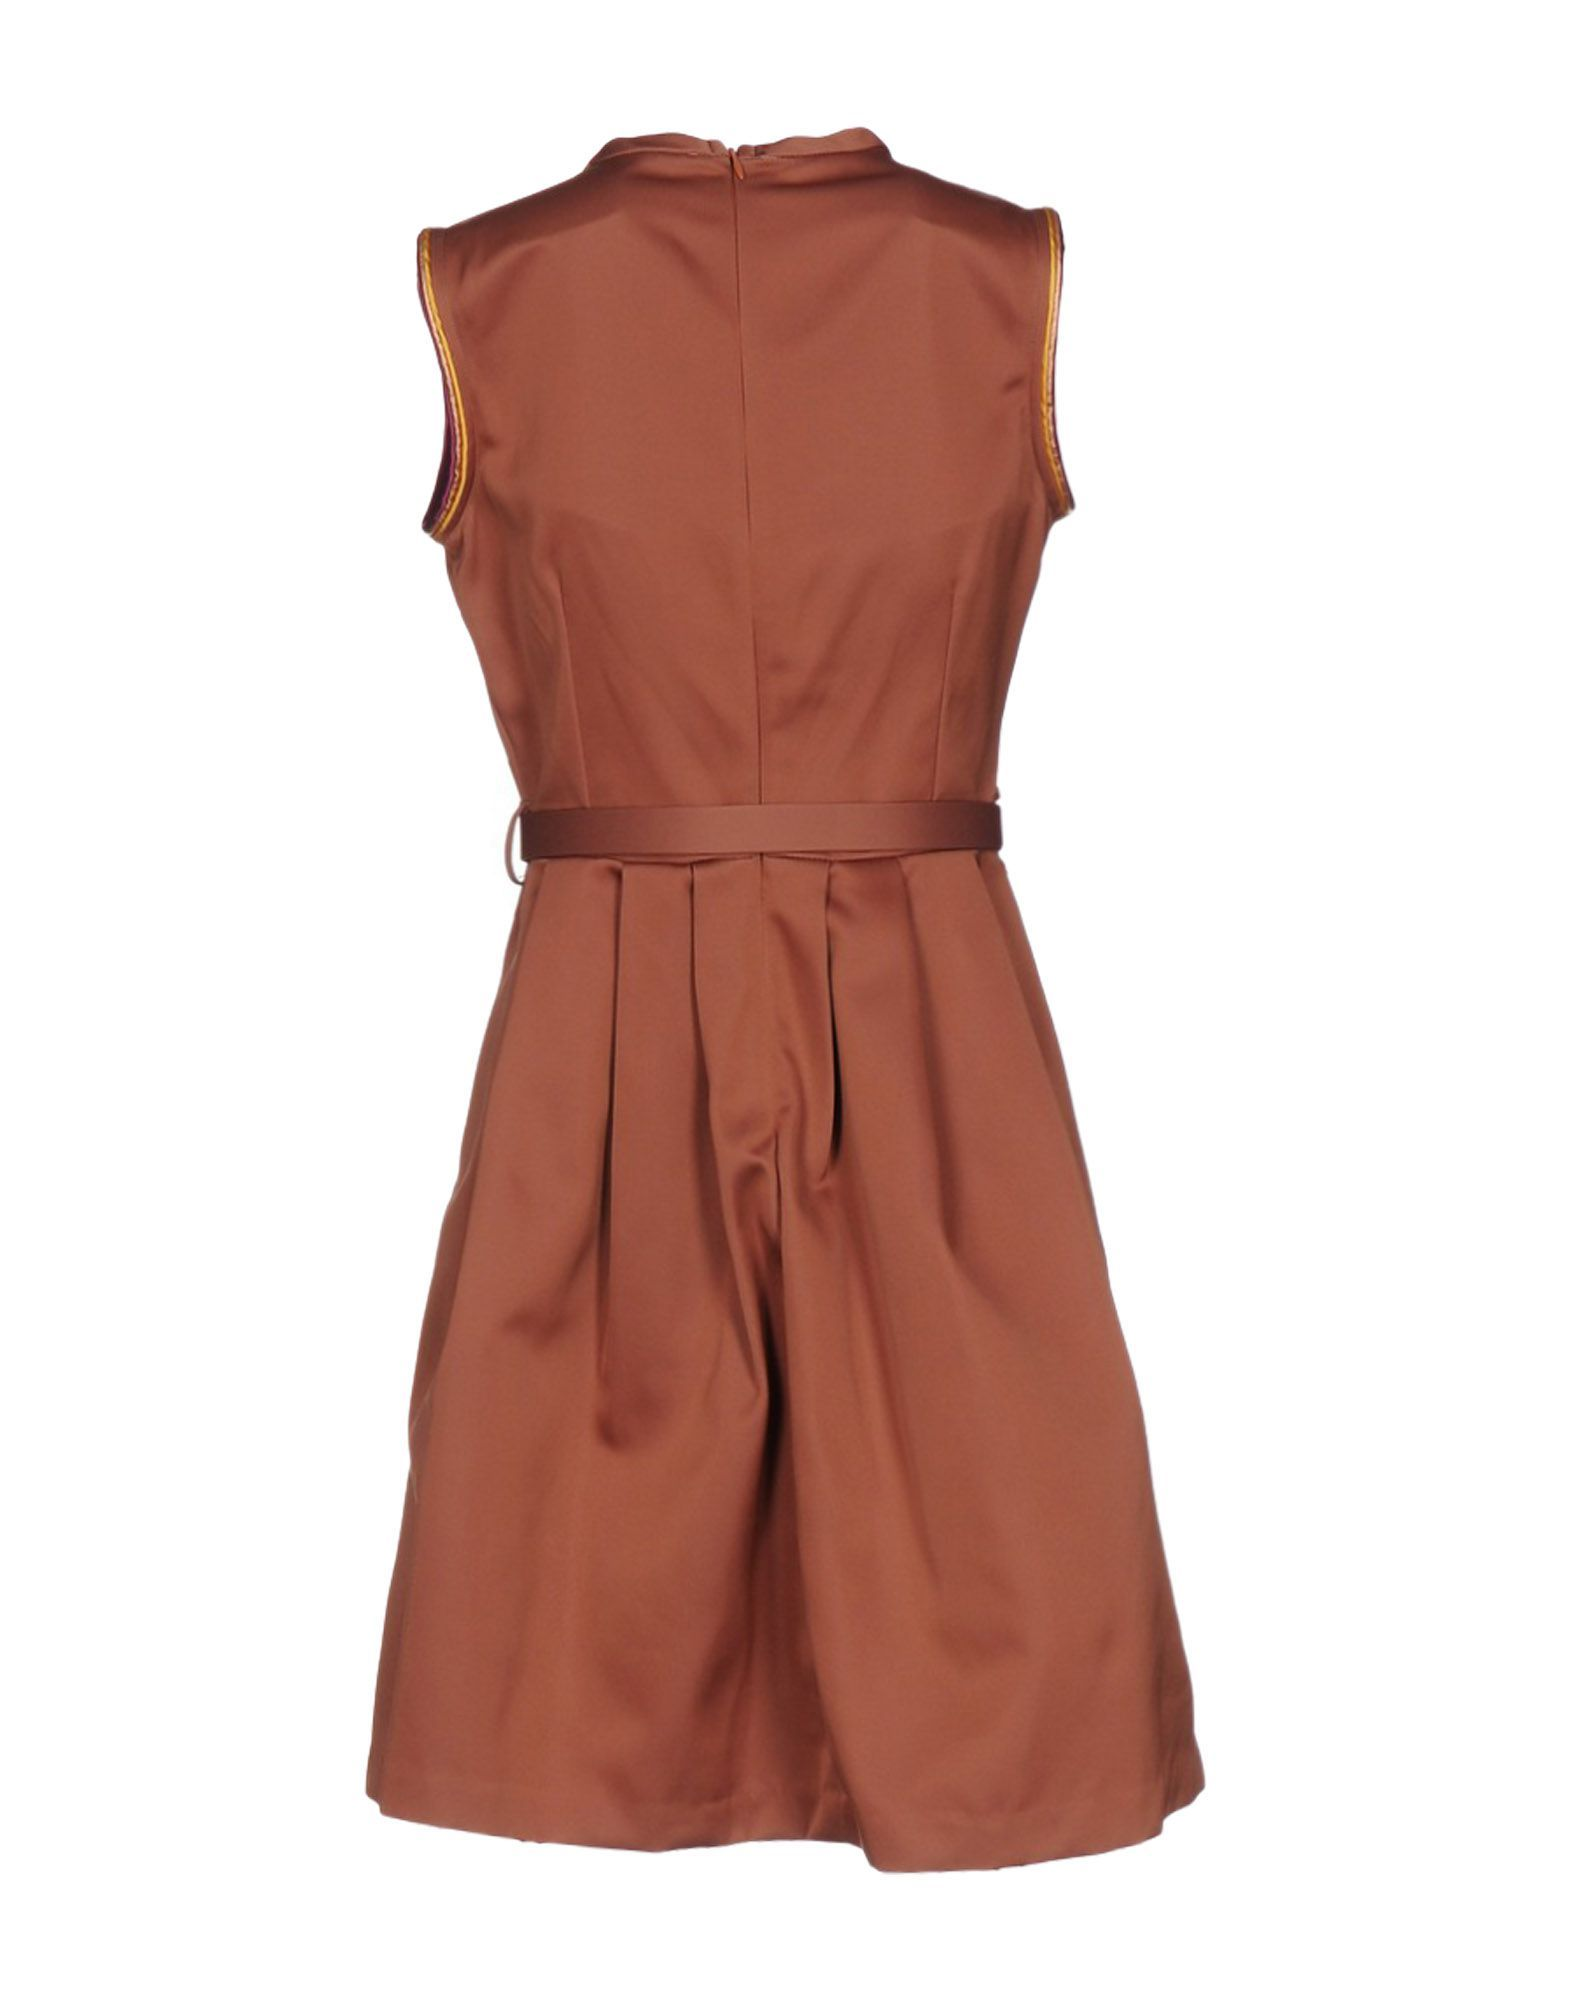 Ottod'Ame Light Brown Satin Belted Dress